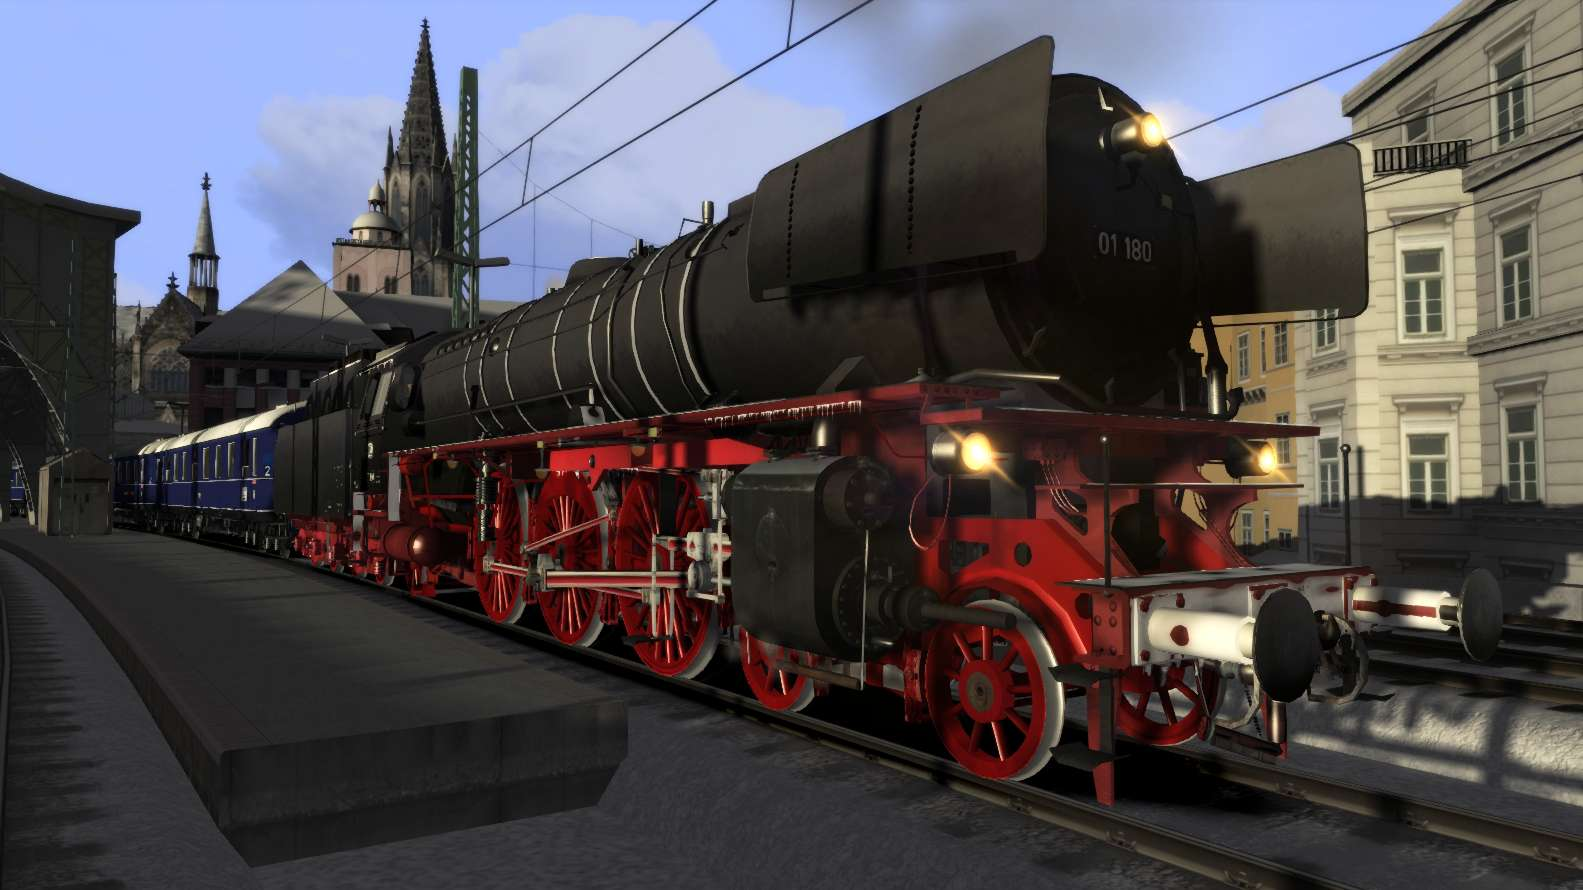 Romantic Railroads German Br01 Class Reboilered Jetzt